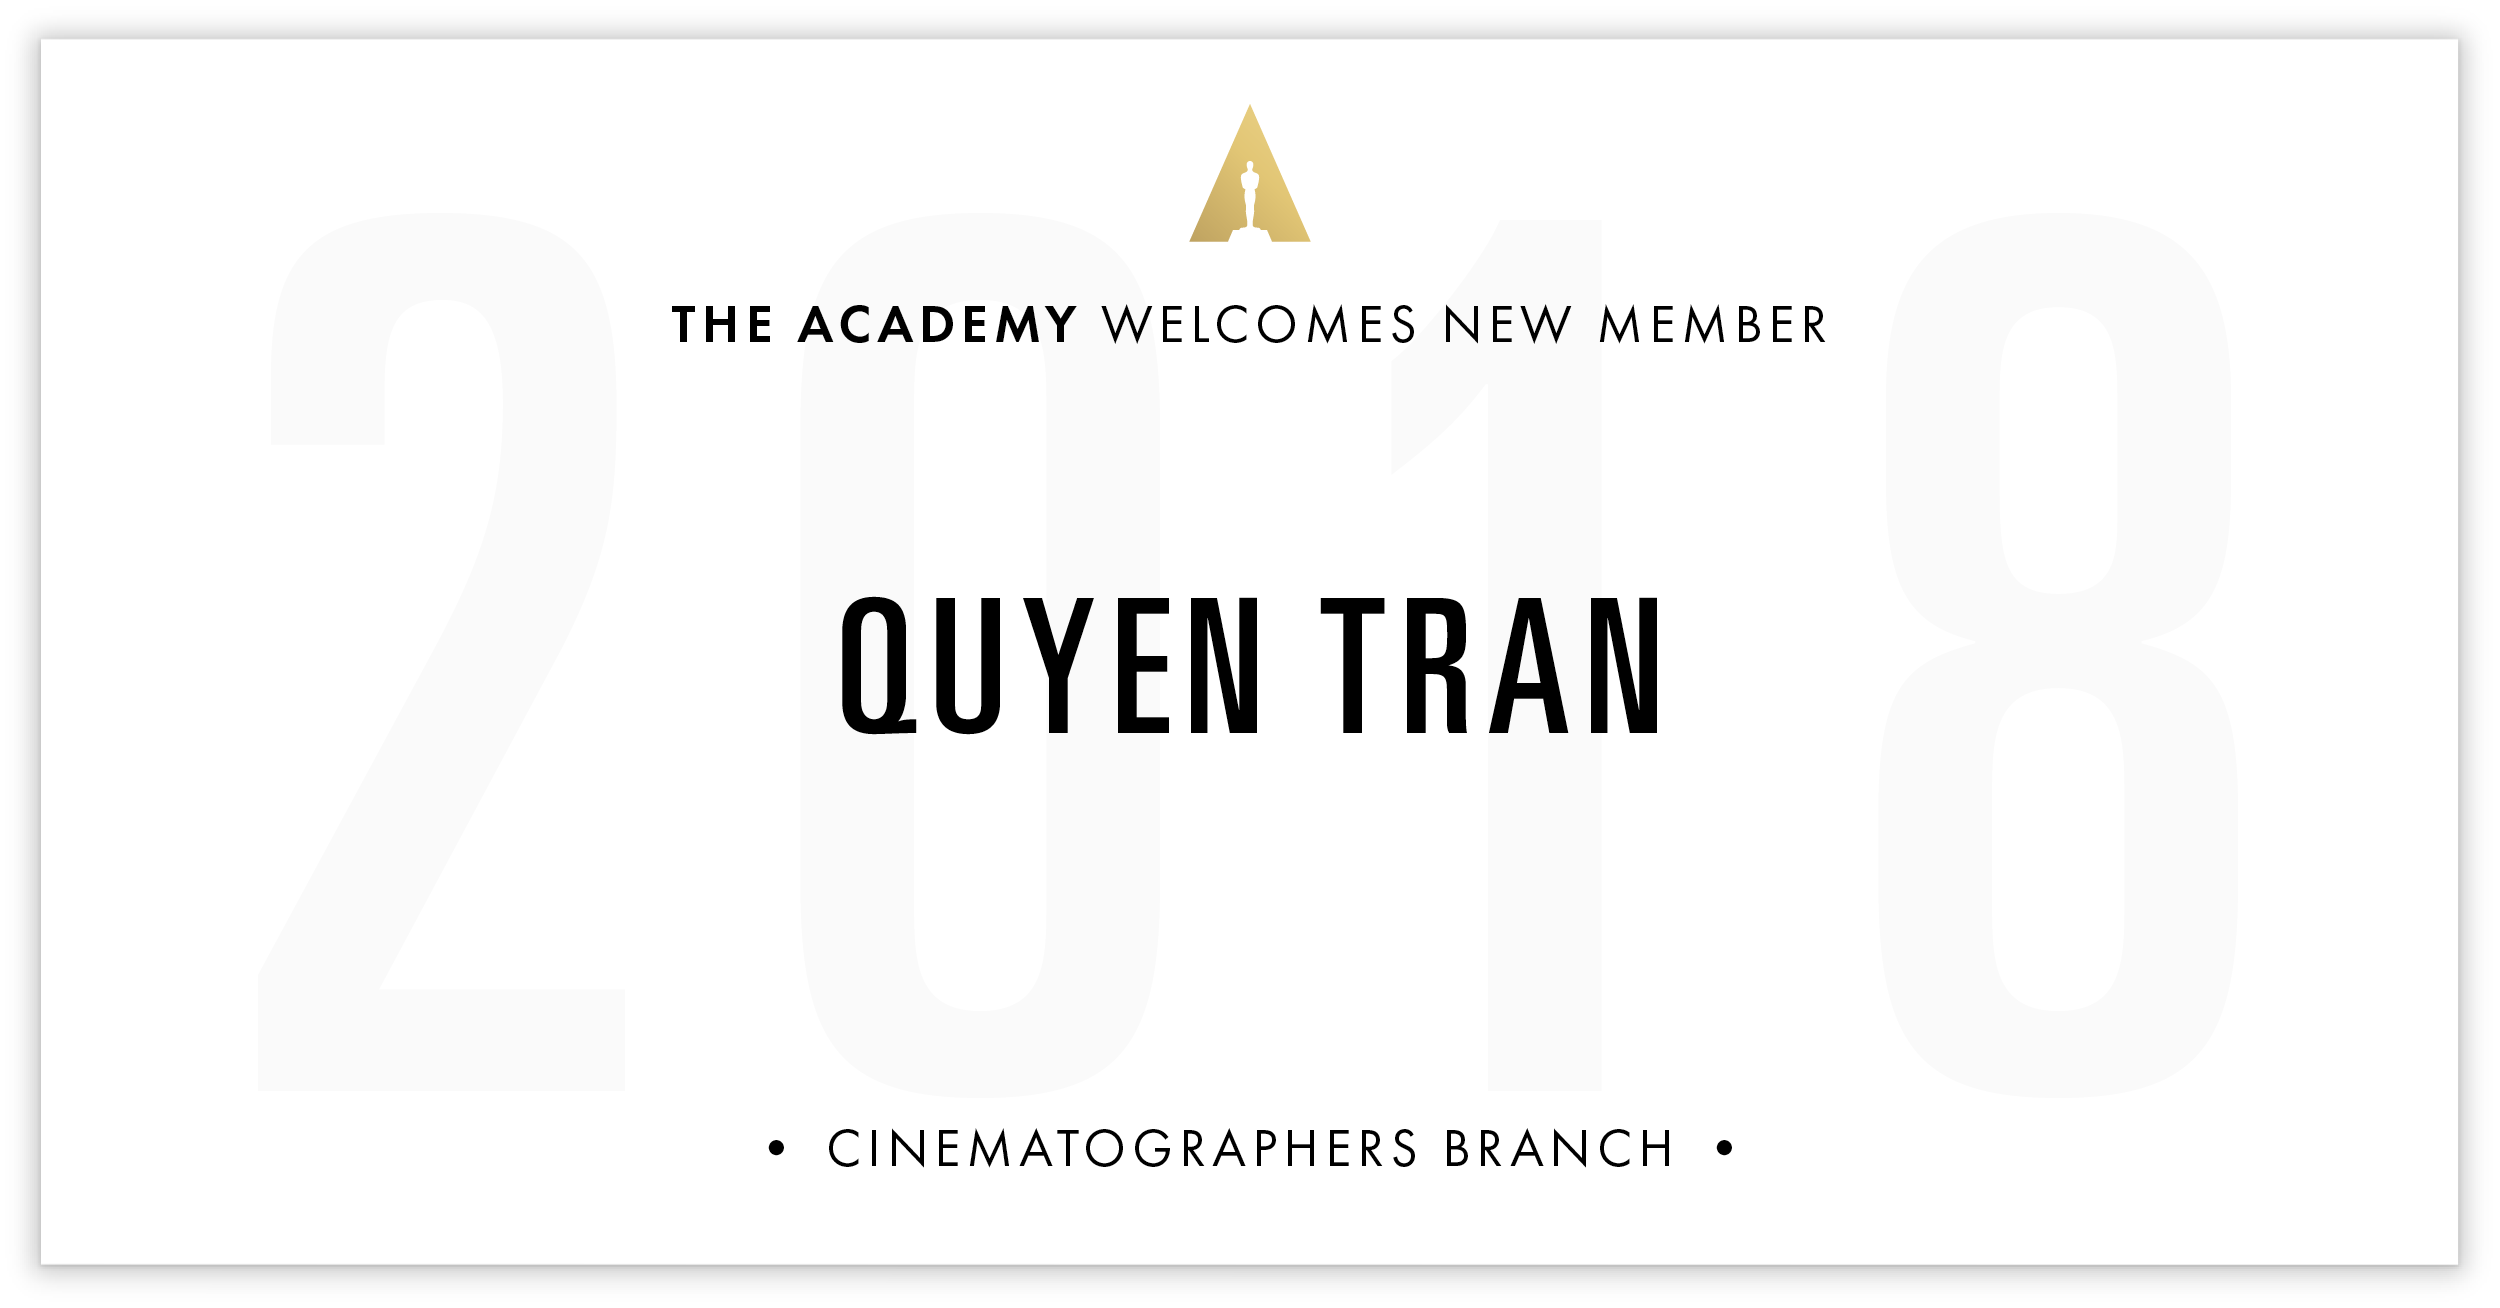 Quyen Tran is invited!